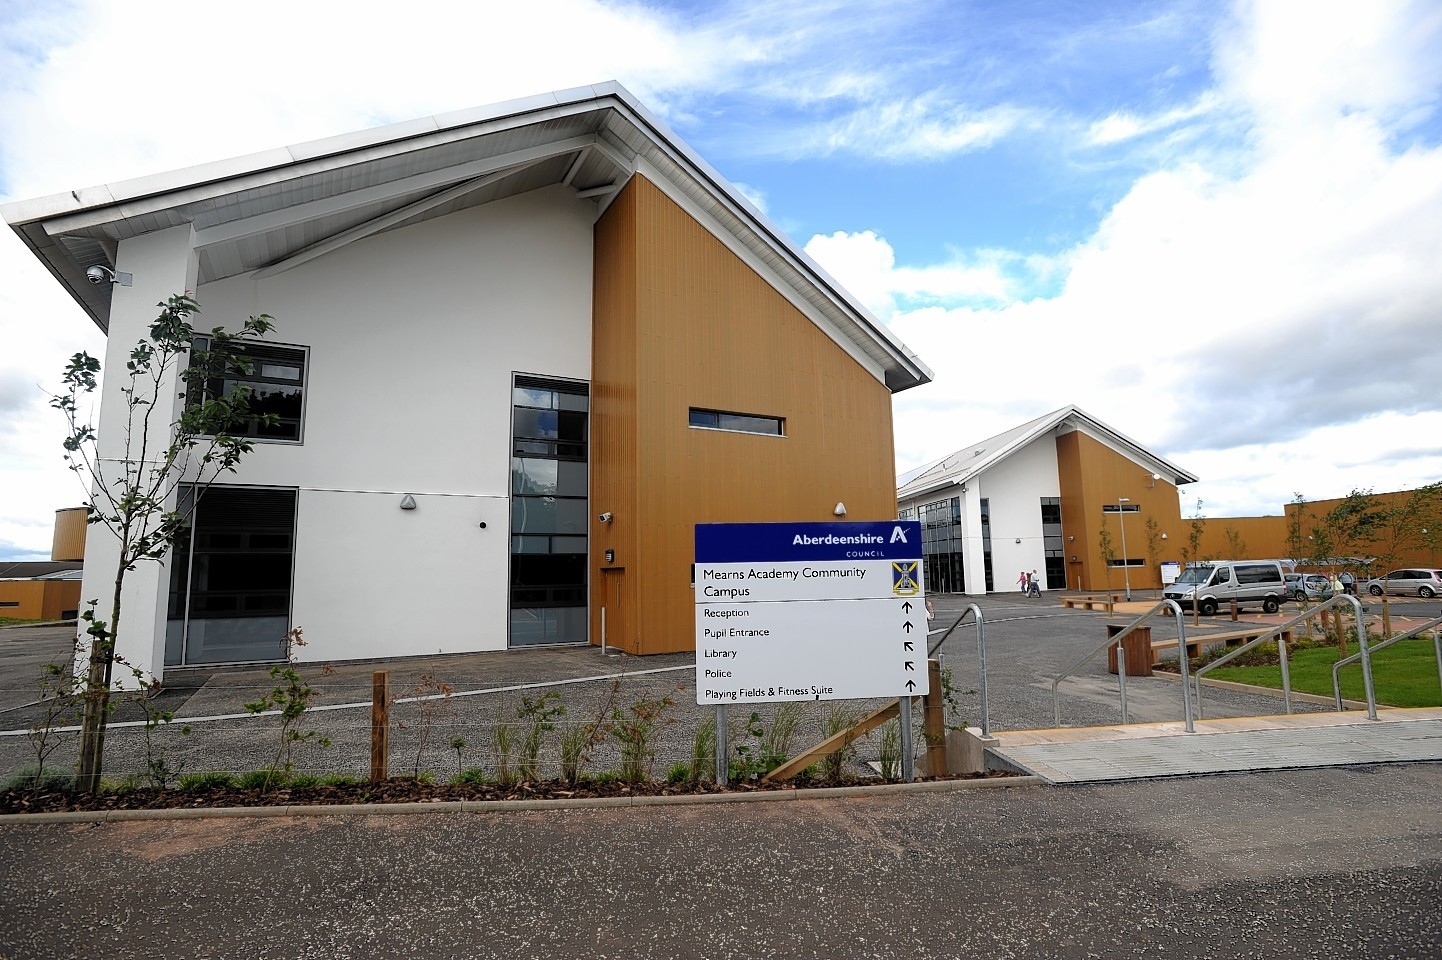 The Mearns Academy Community Campus